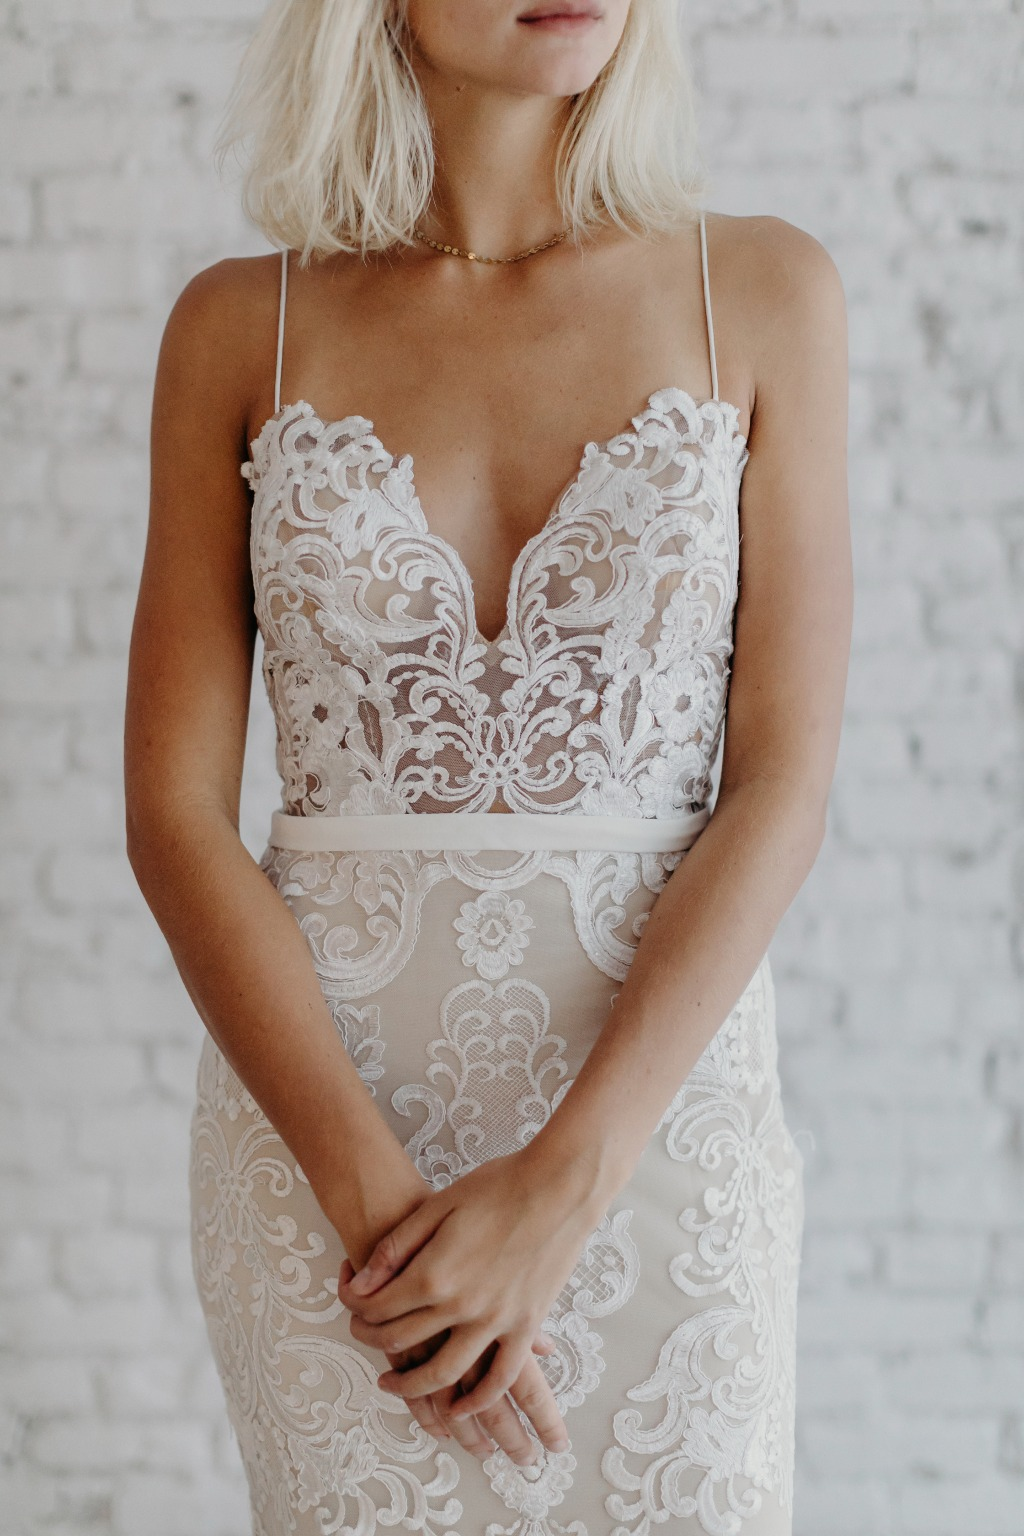 The best-selling dress from Australian bridal designer Goddess By Nature! It is available to try on at their stockist locations or